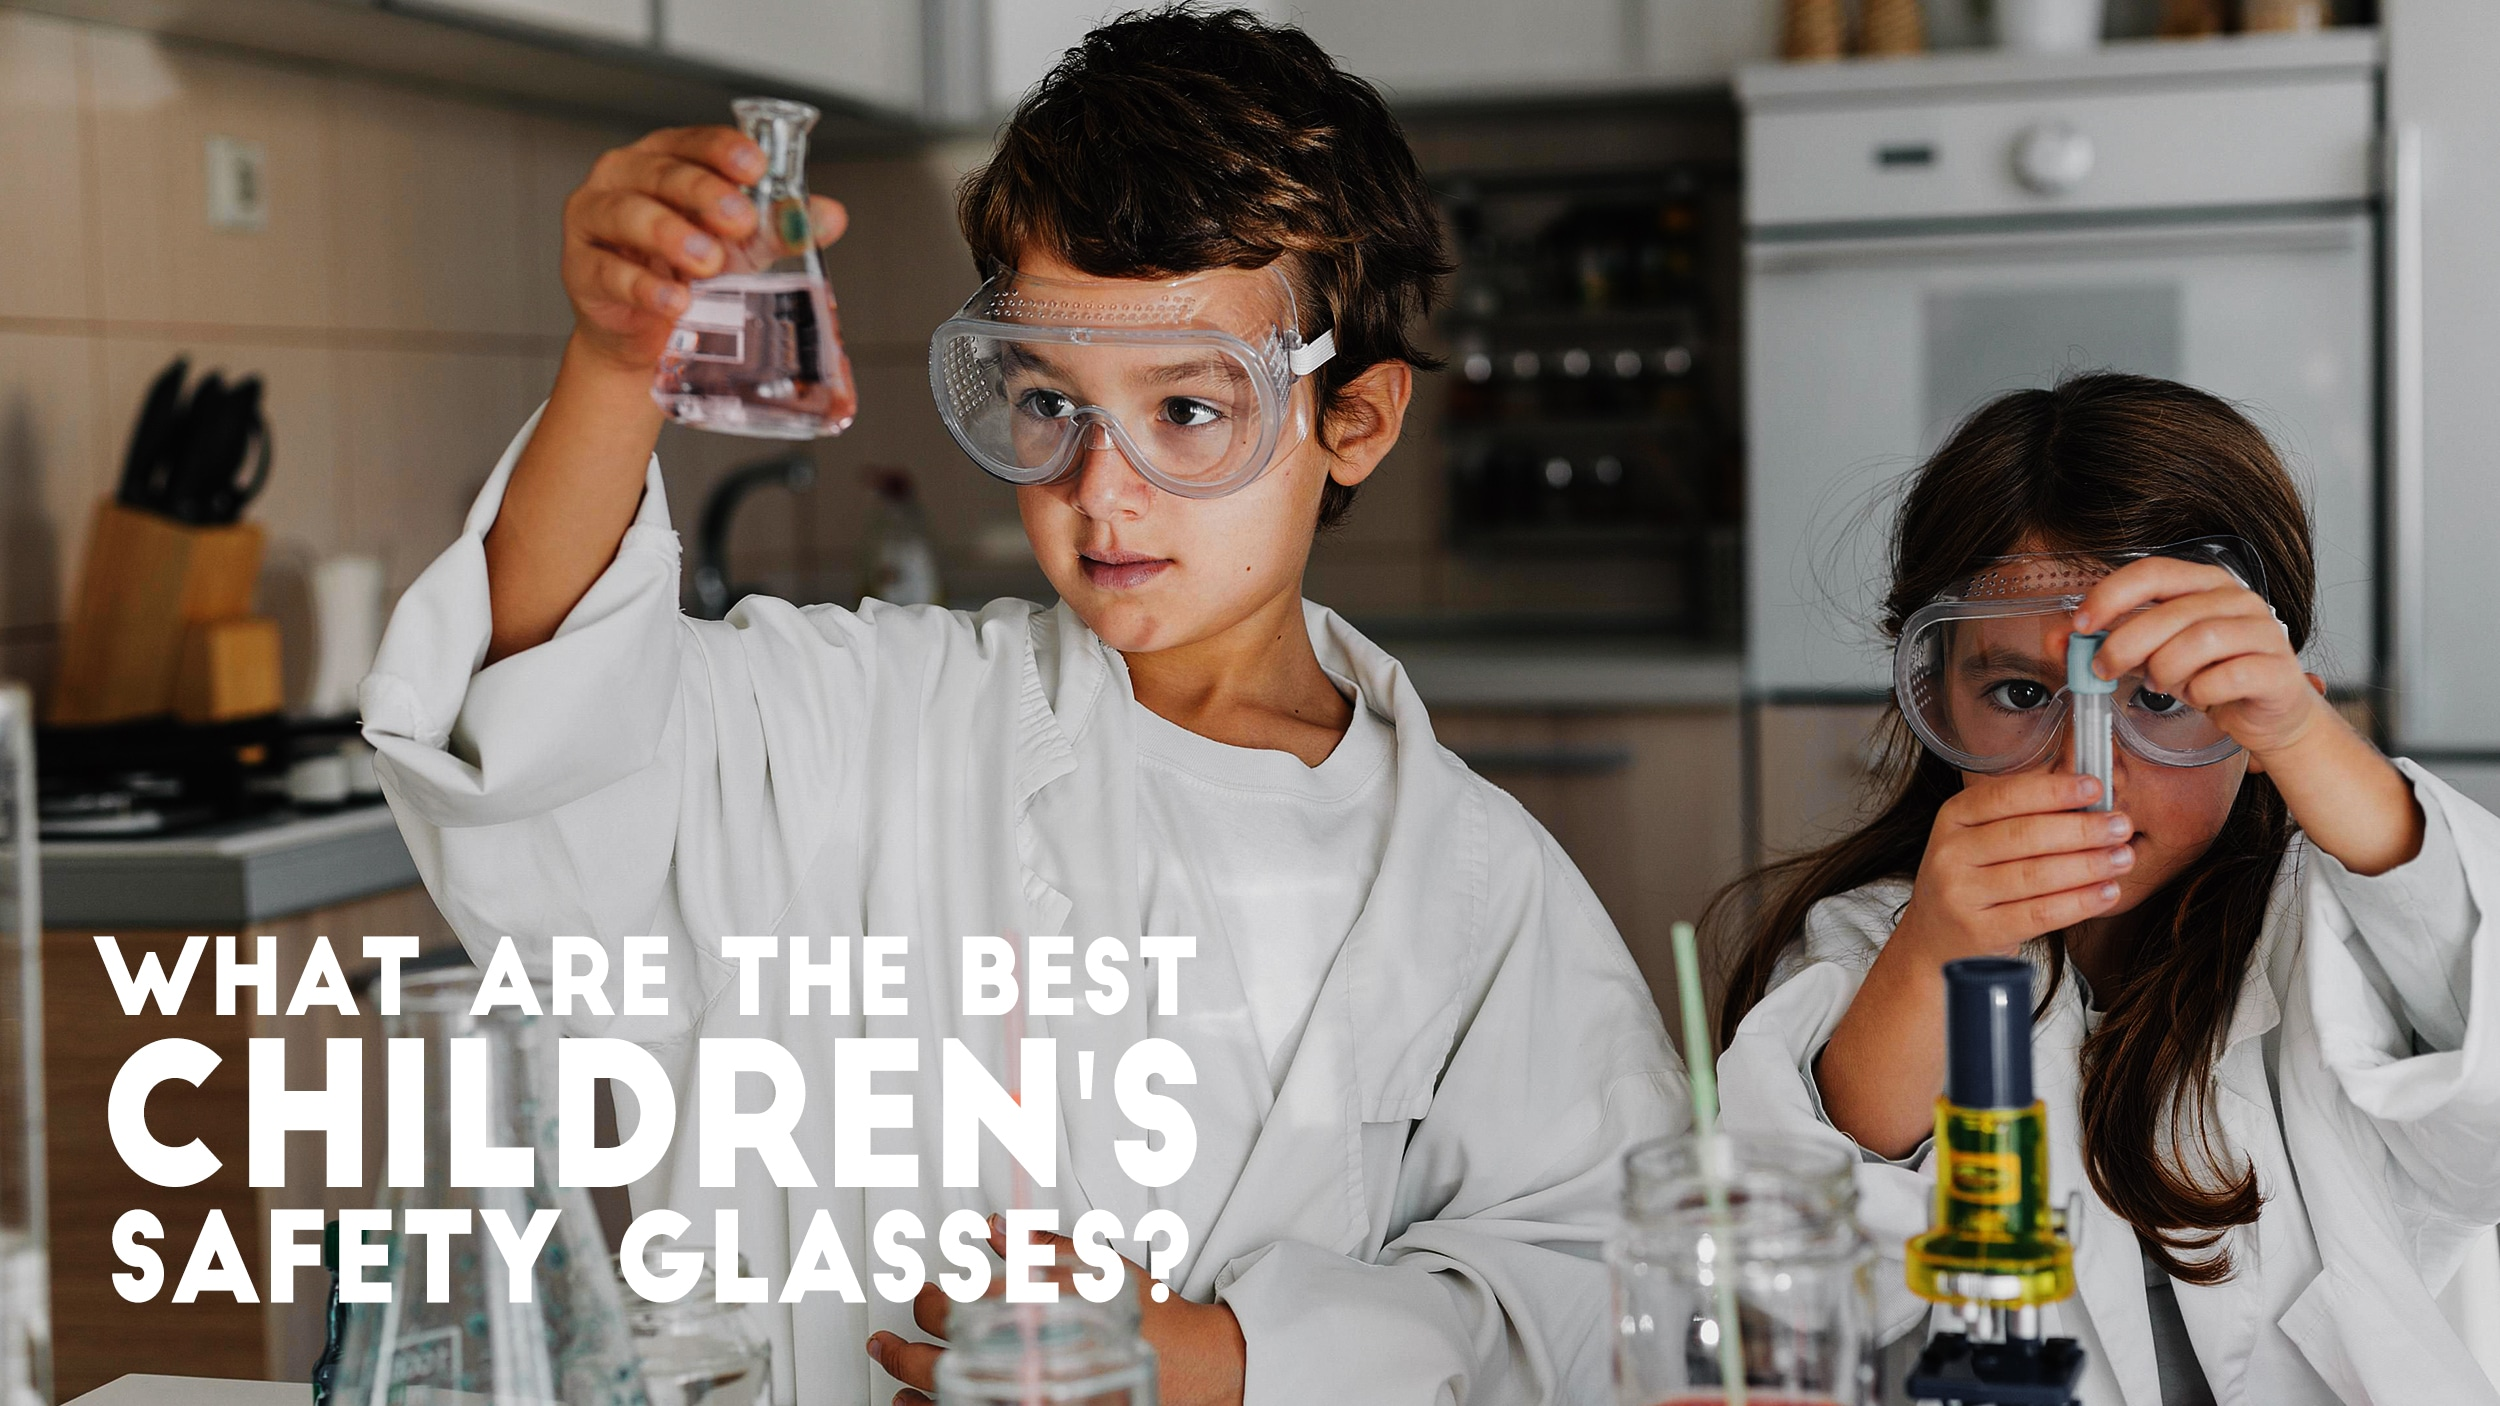 How To Find the Best Children's Safety Glasses Header